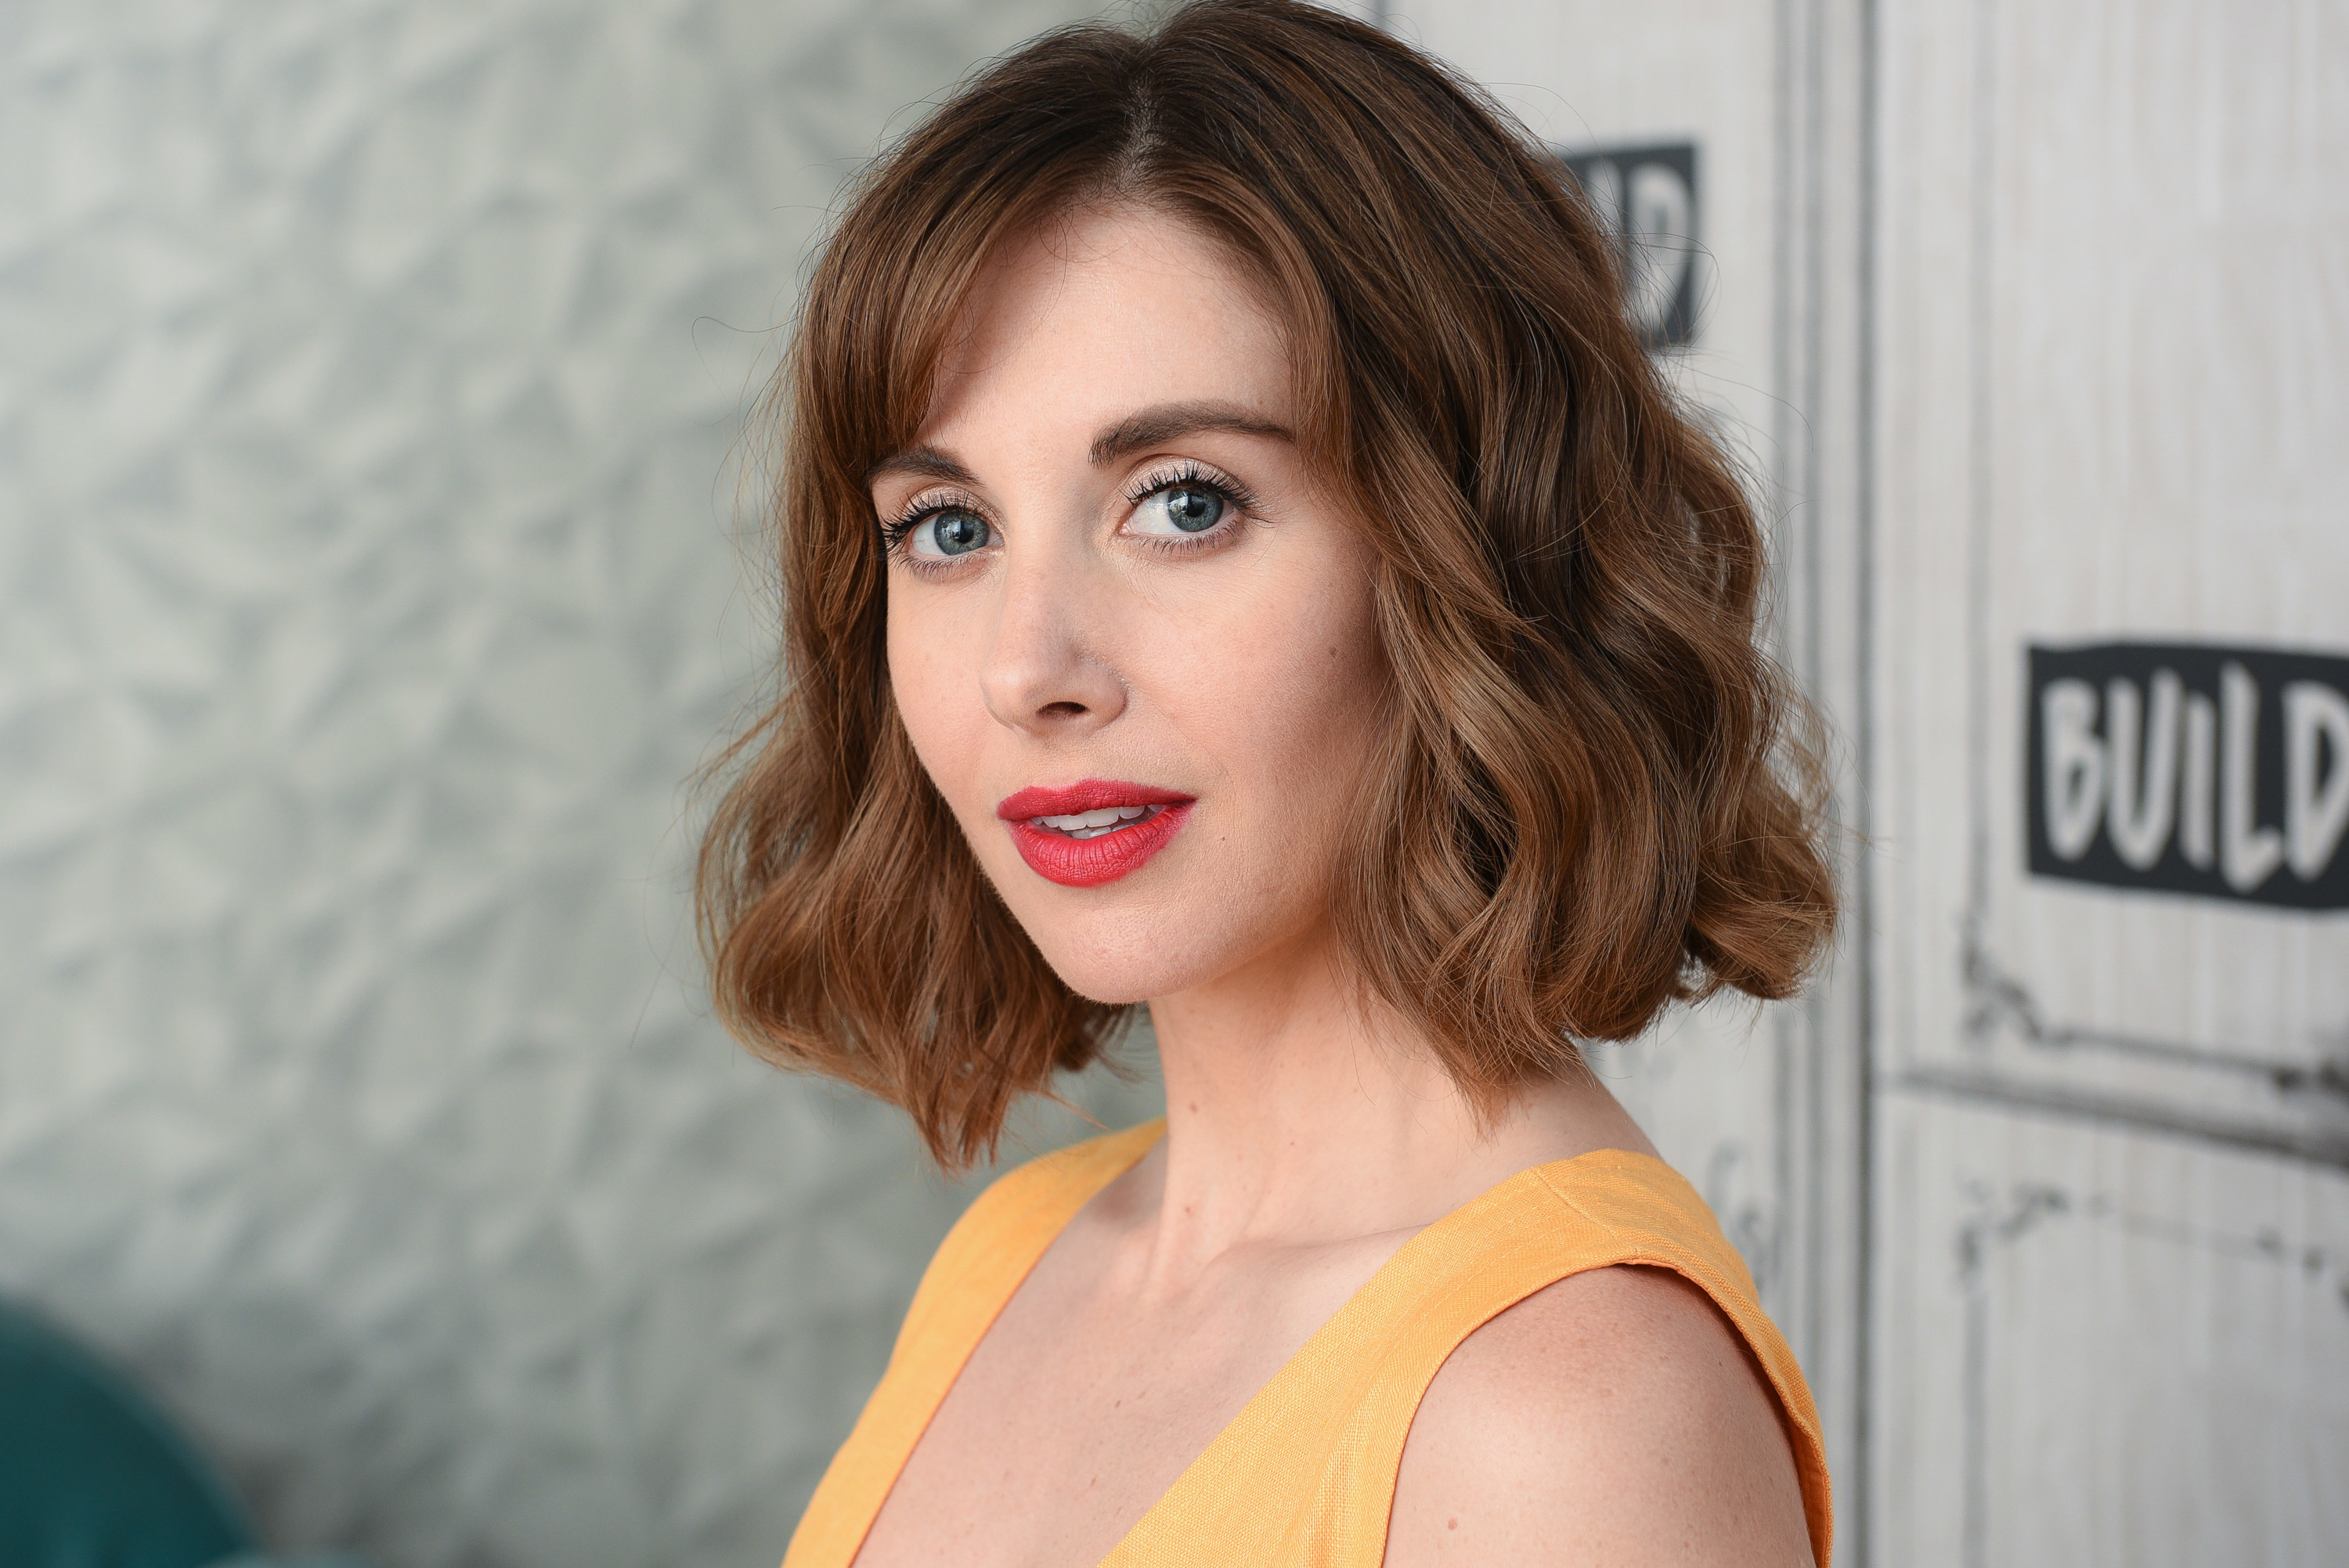 Headshot style photo of Alison Brie in yellow dress